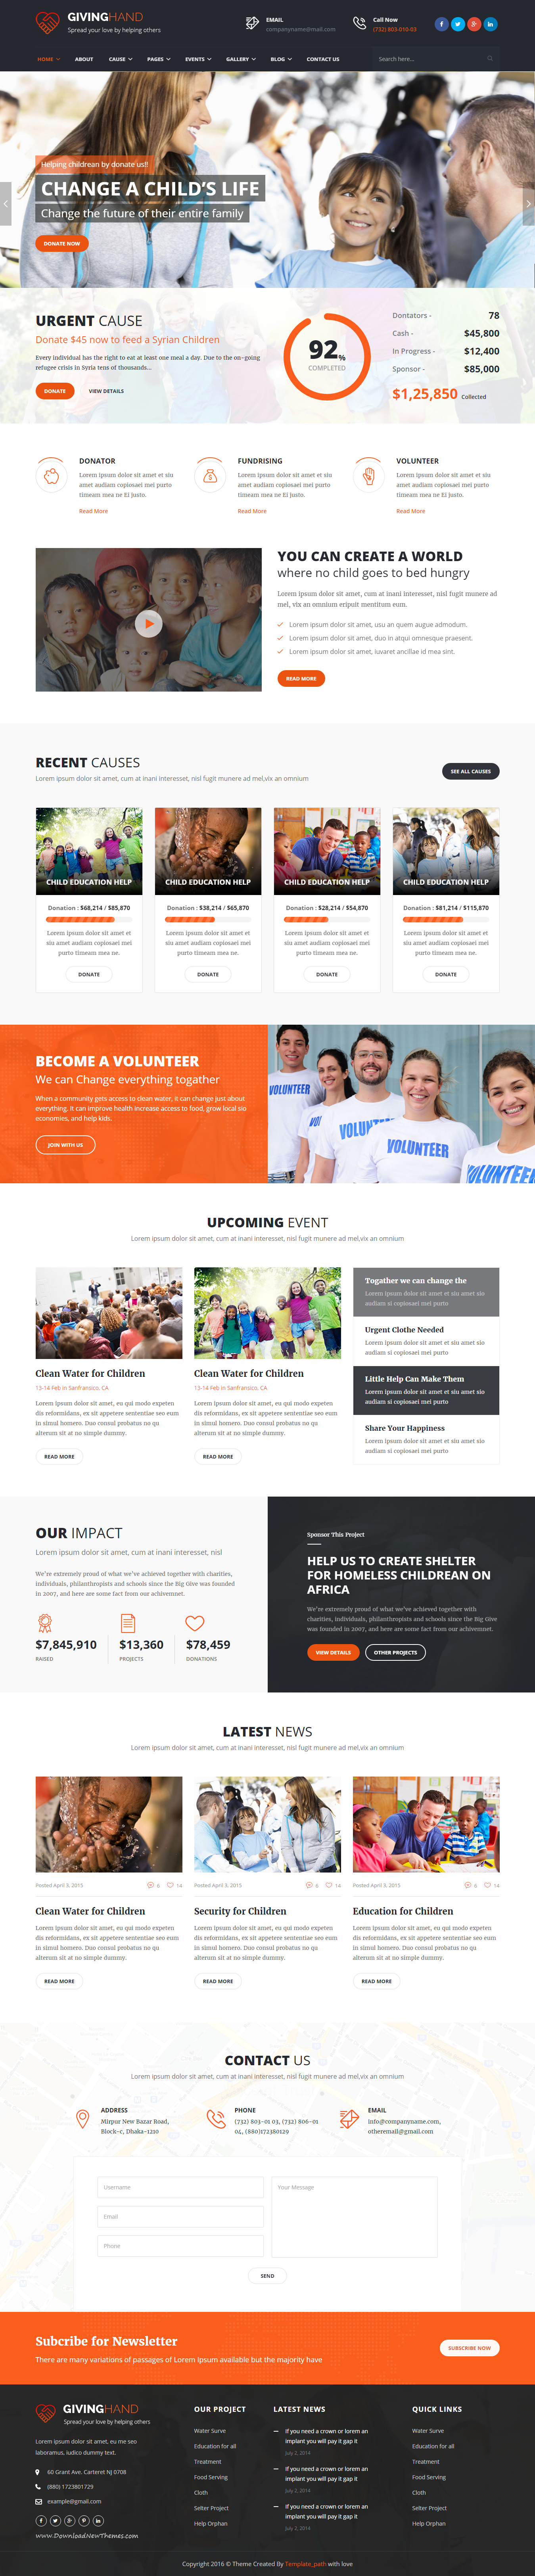 Giving Hand - Responsive HTML Template for Charity & Fund Raising ...